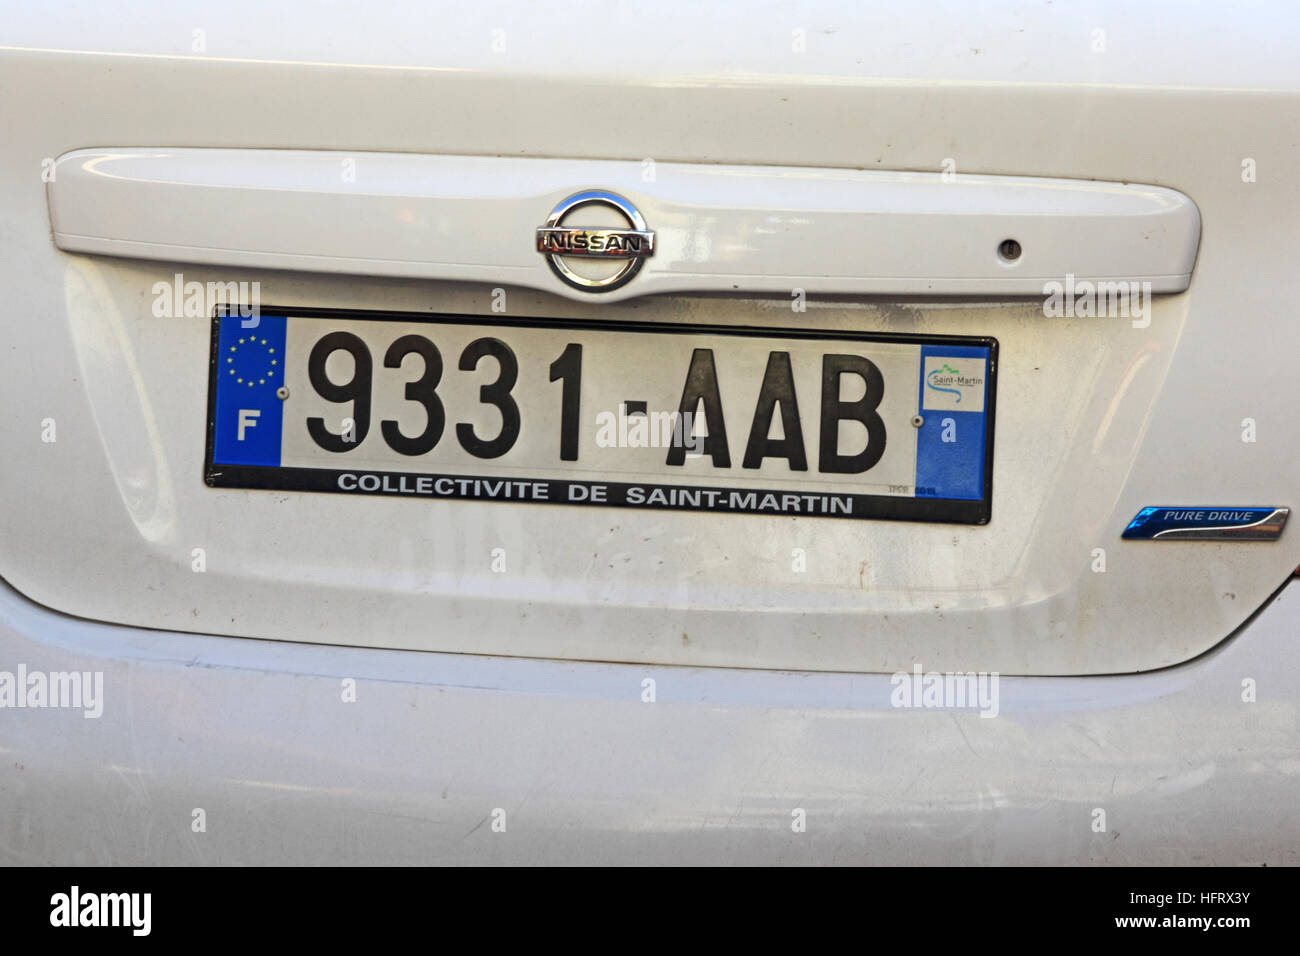 French number plate stockfotos french number plate for Garage ford saumur